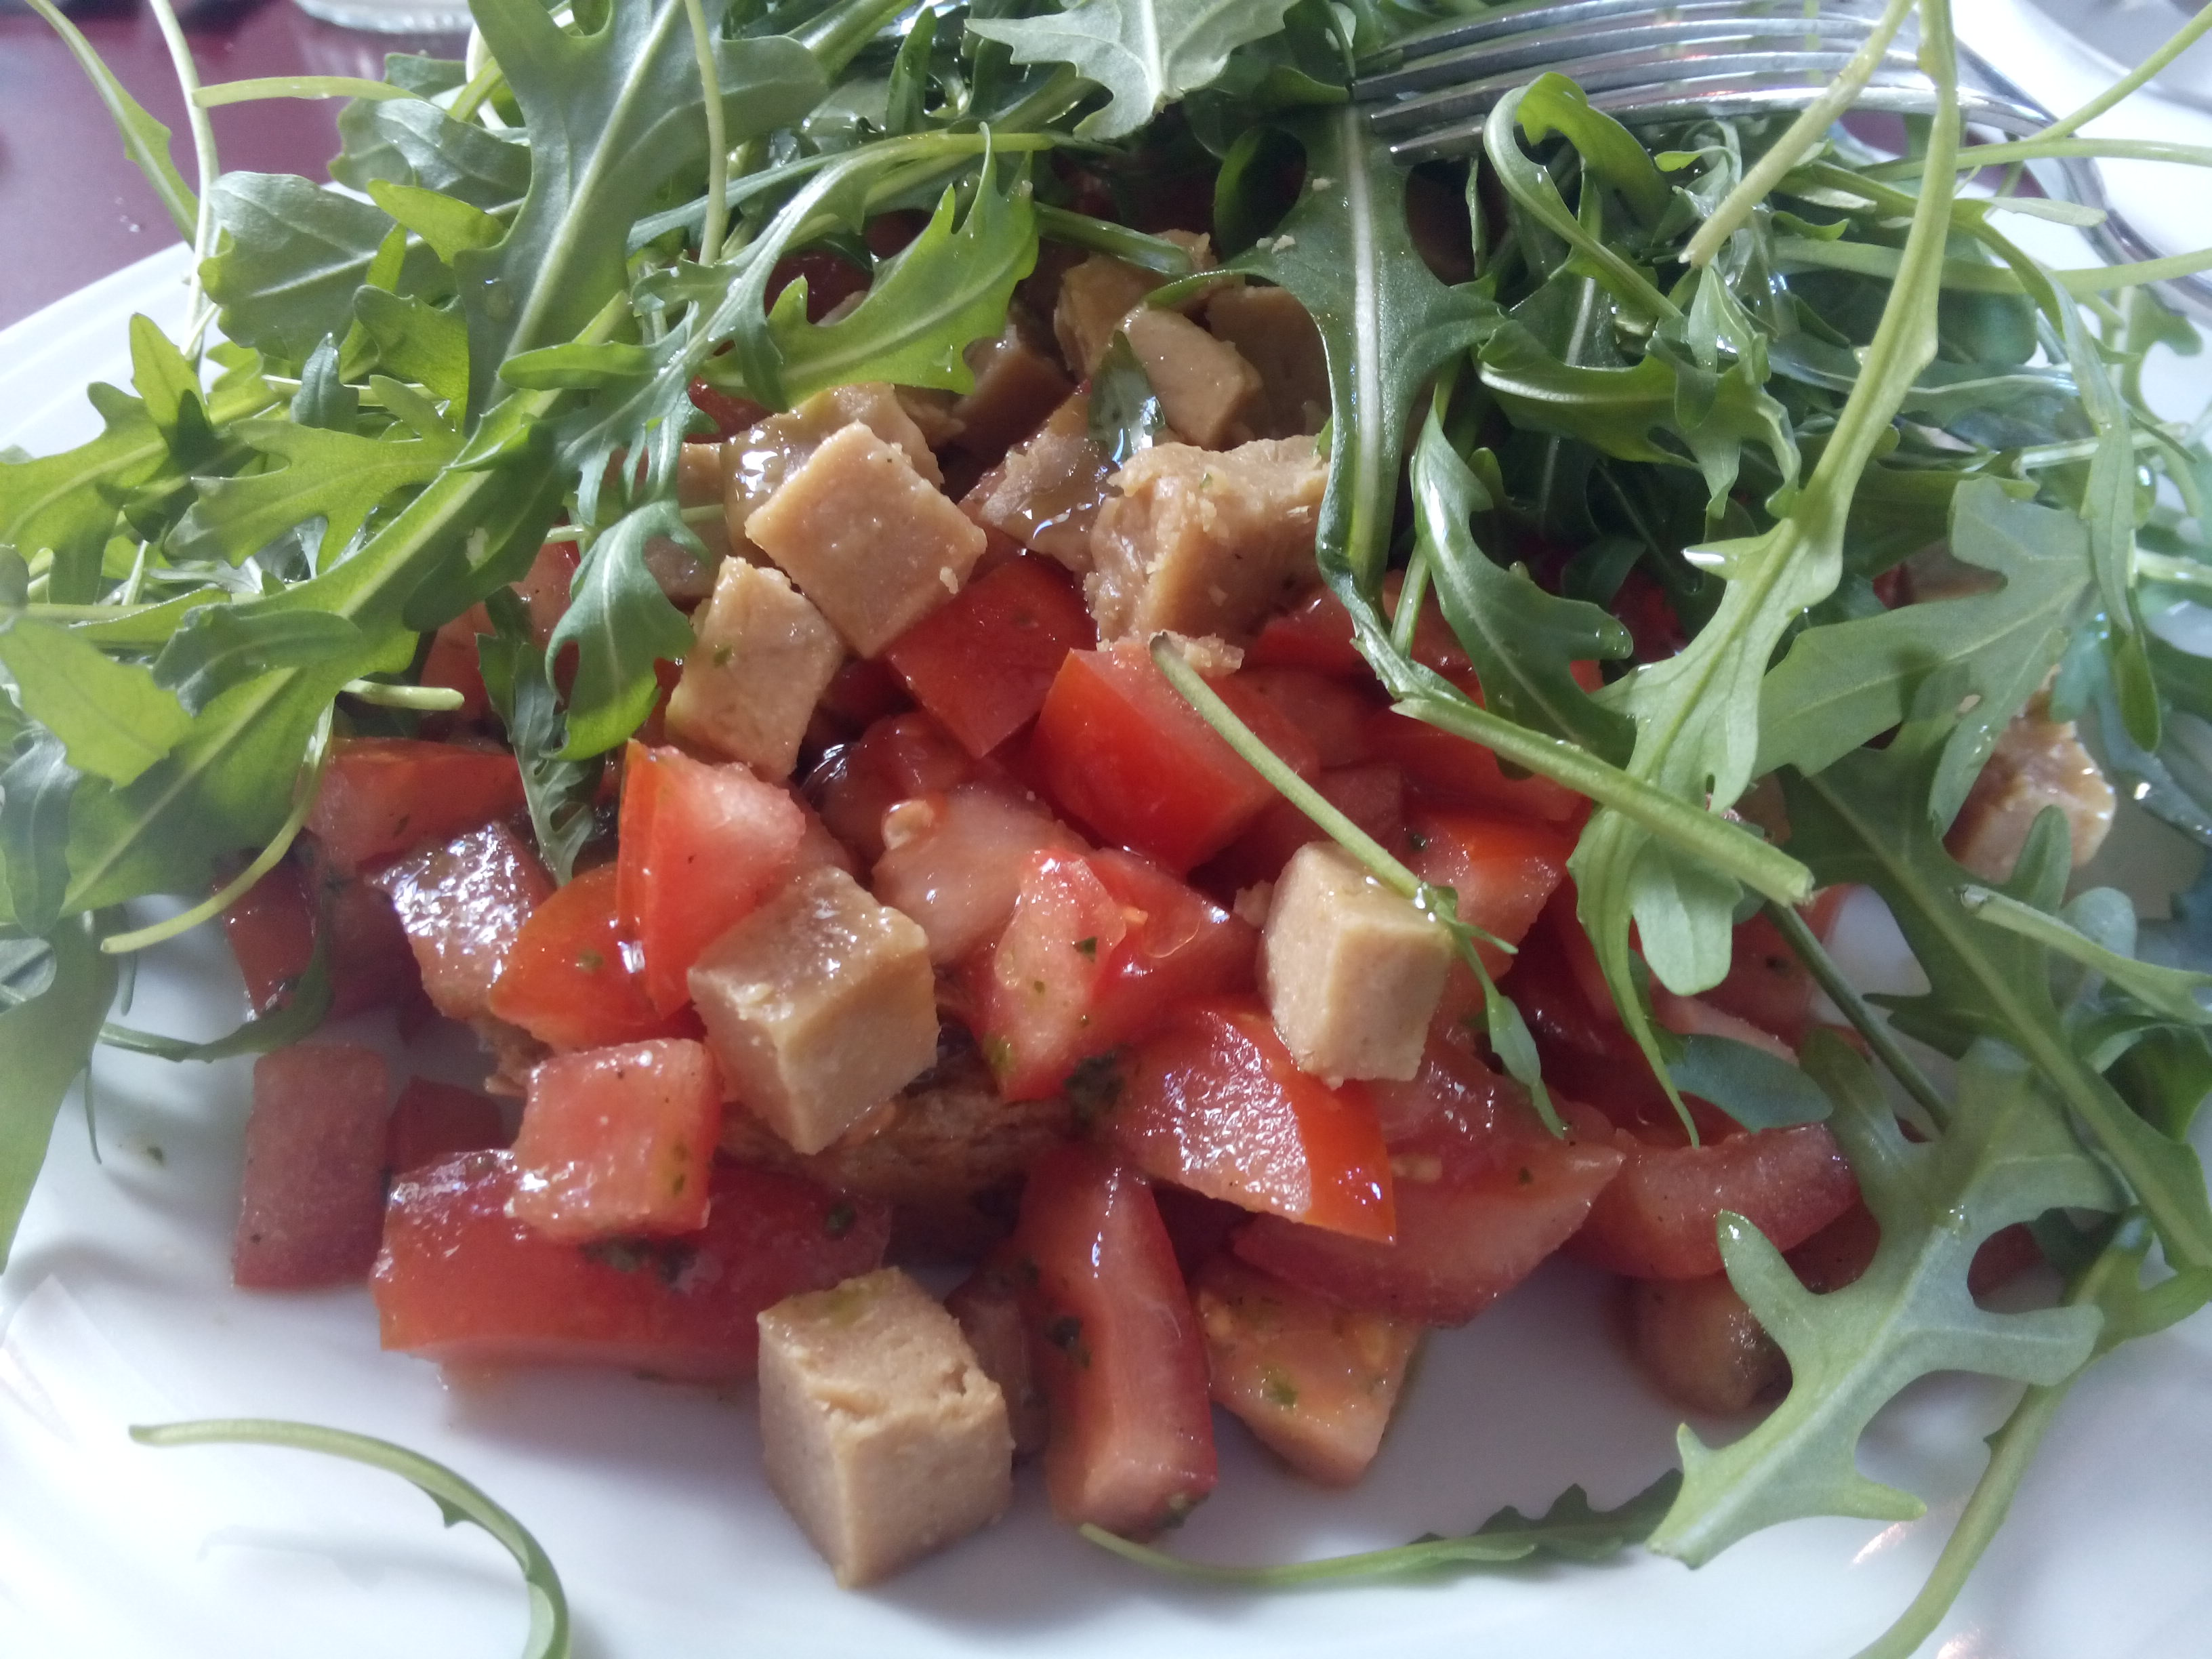 A mountain of rocket shrouds chunks of red tomato and brown cashew 'cheese'